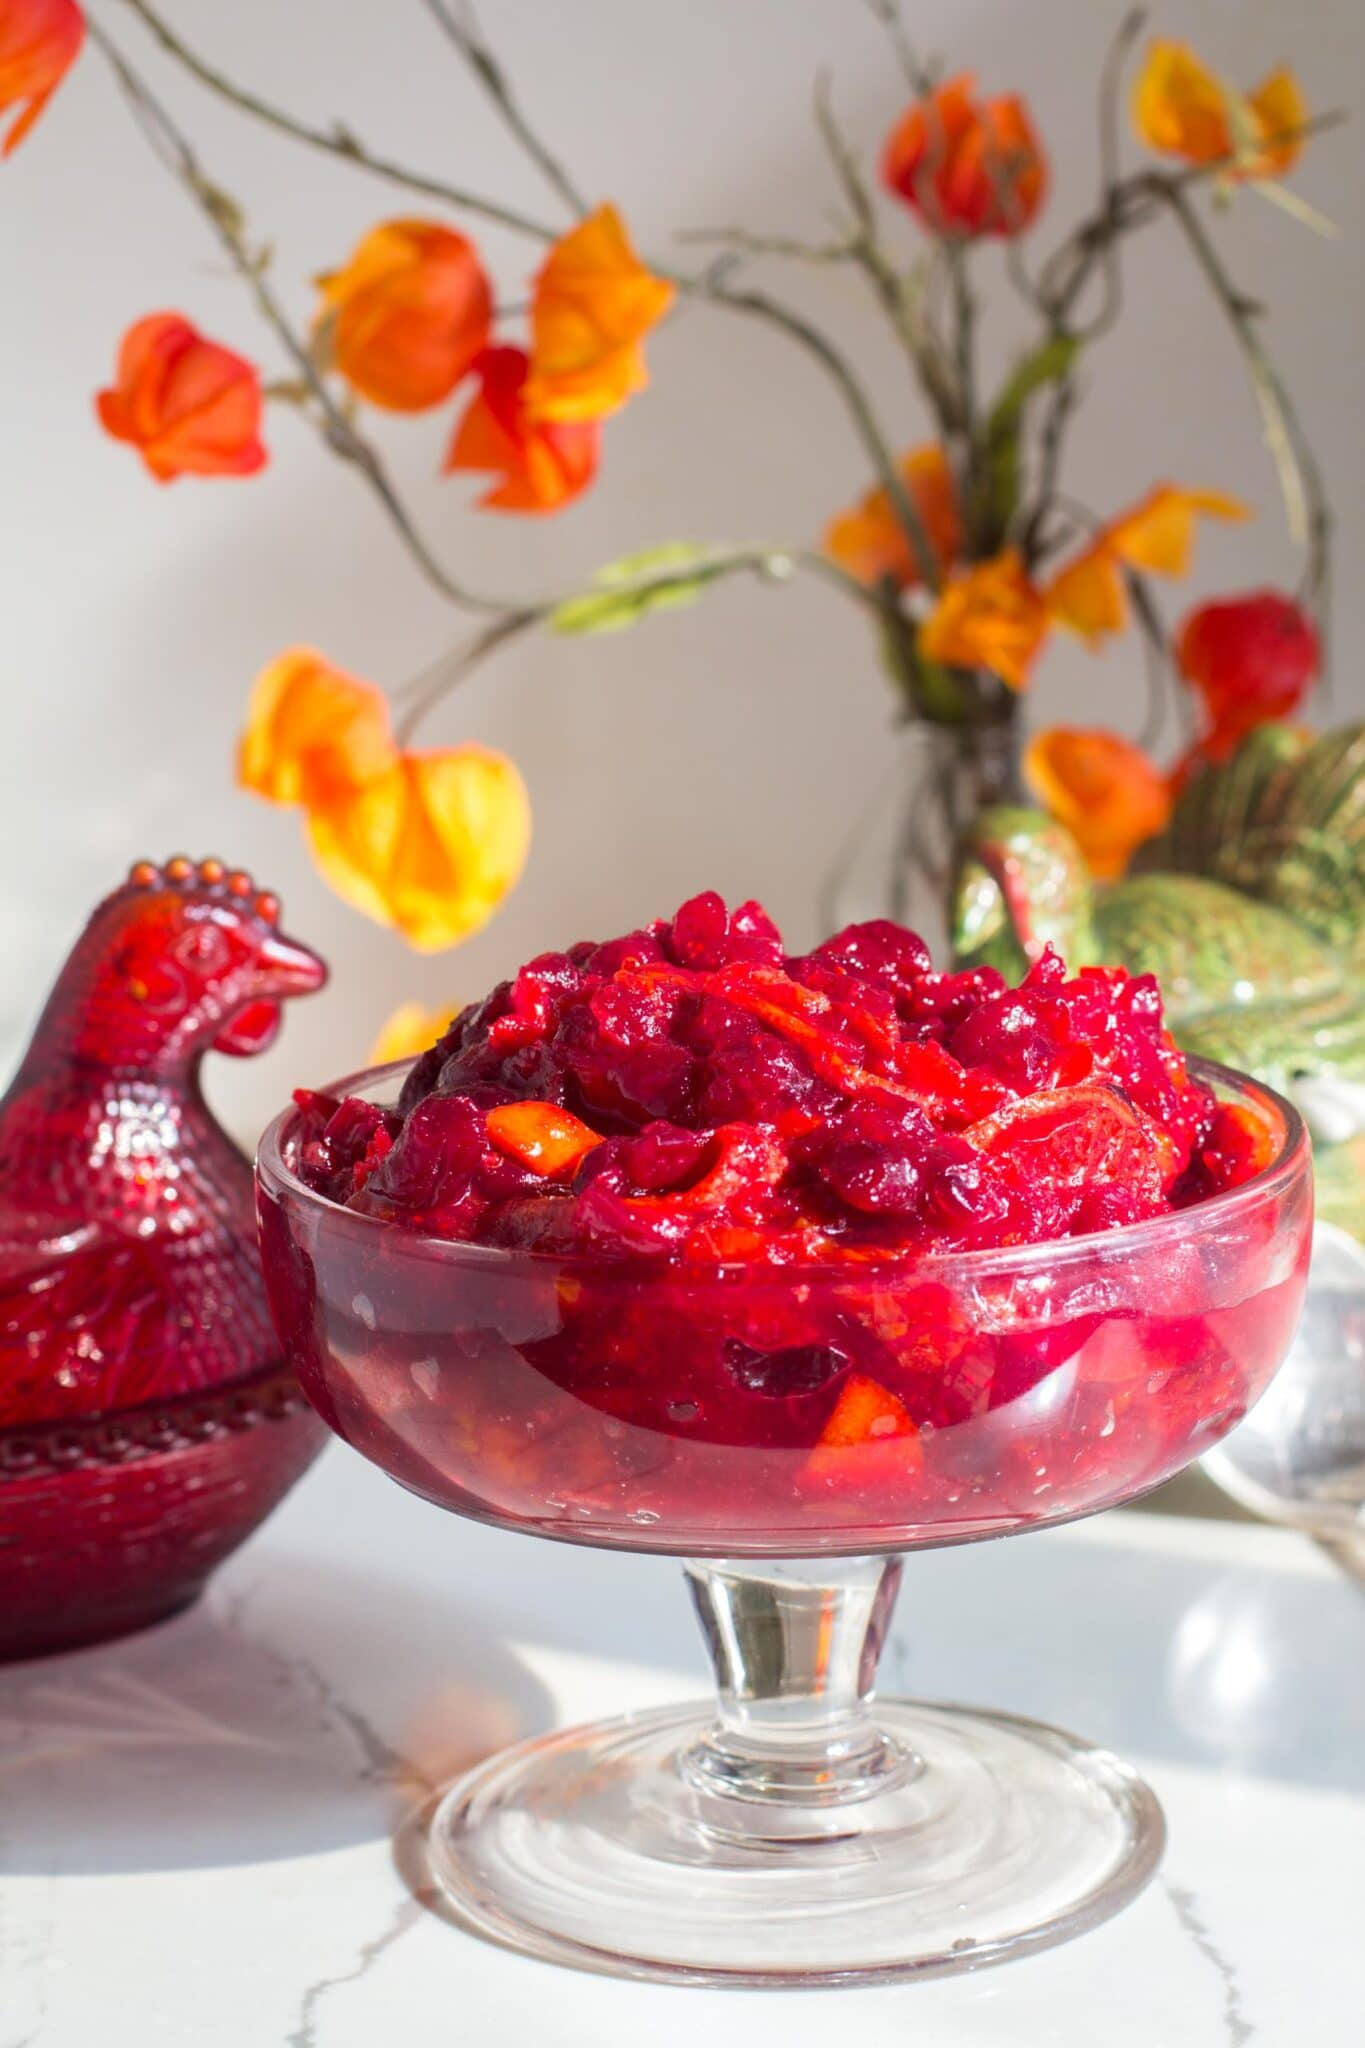 vertical image of cranberry sauce in footed glass bowl